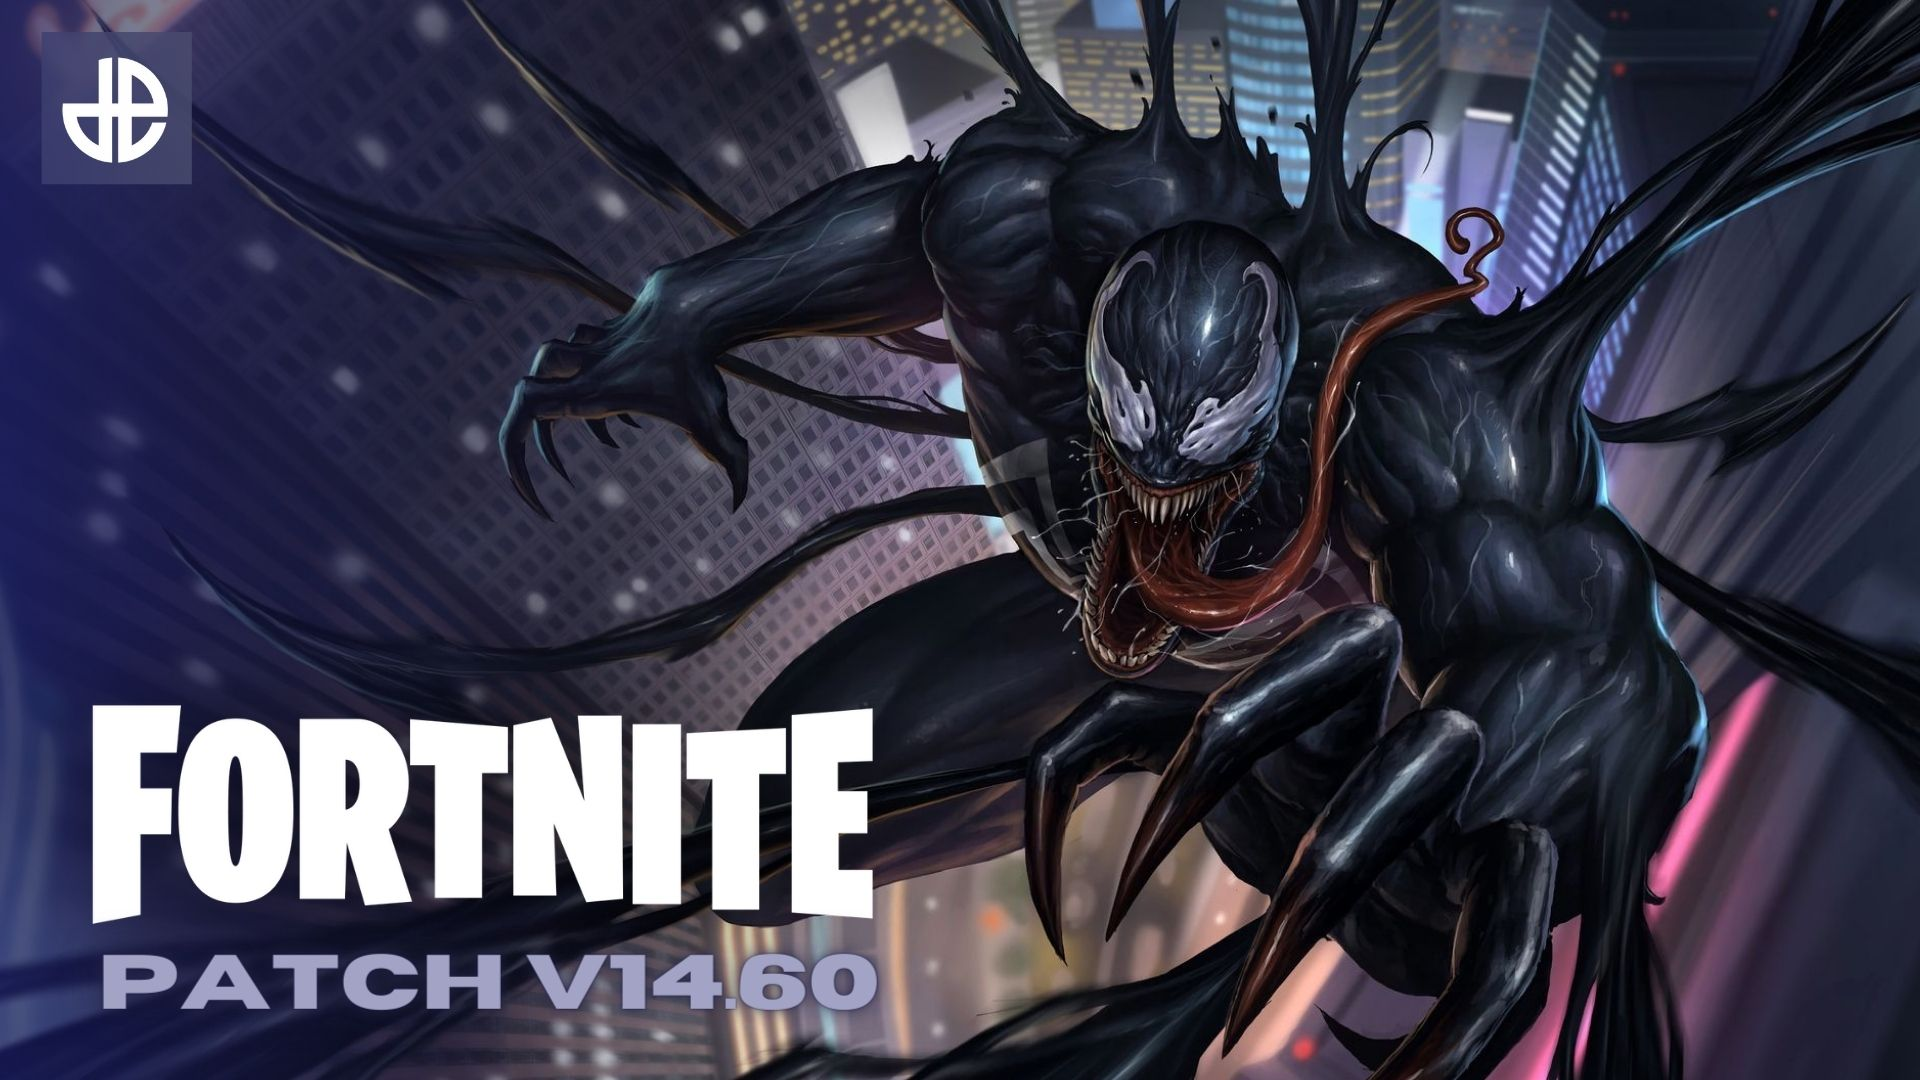 Venom dives towards a Fortnite patch 14.60 logo.